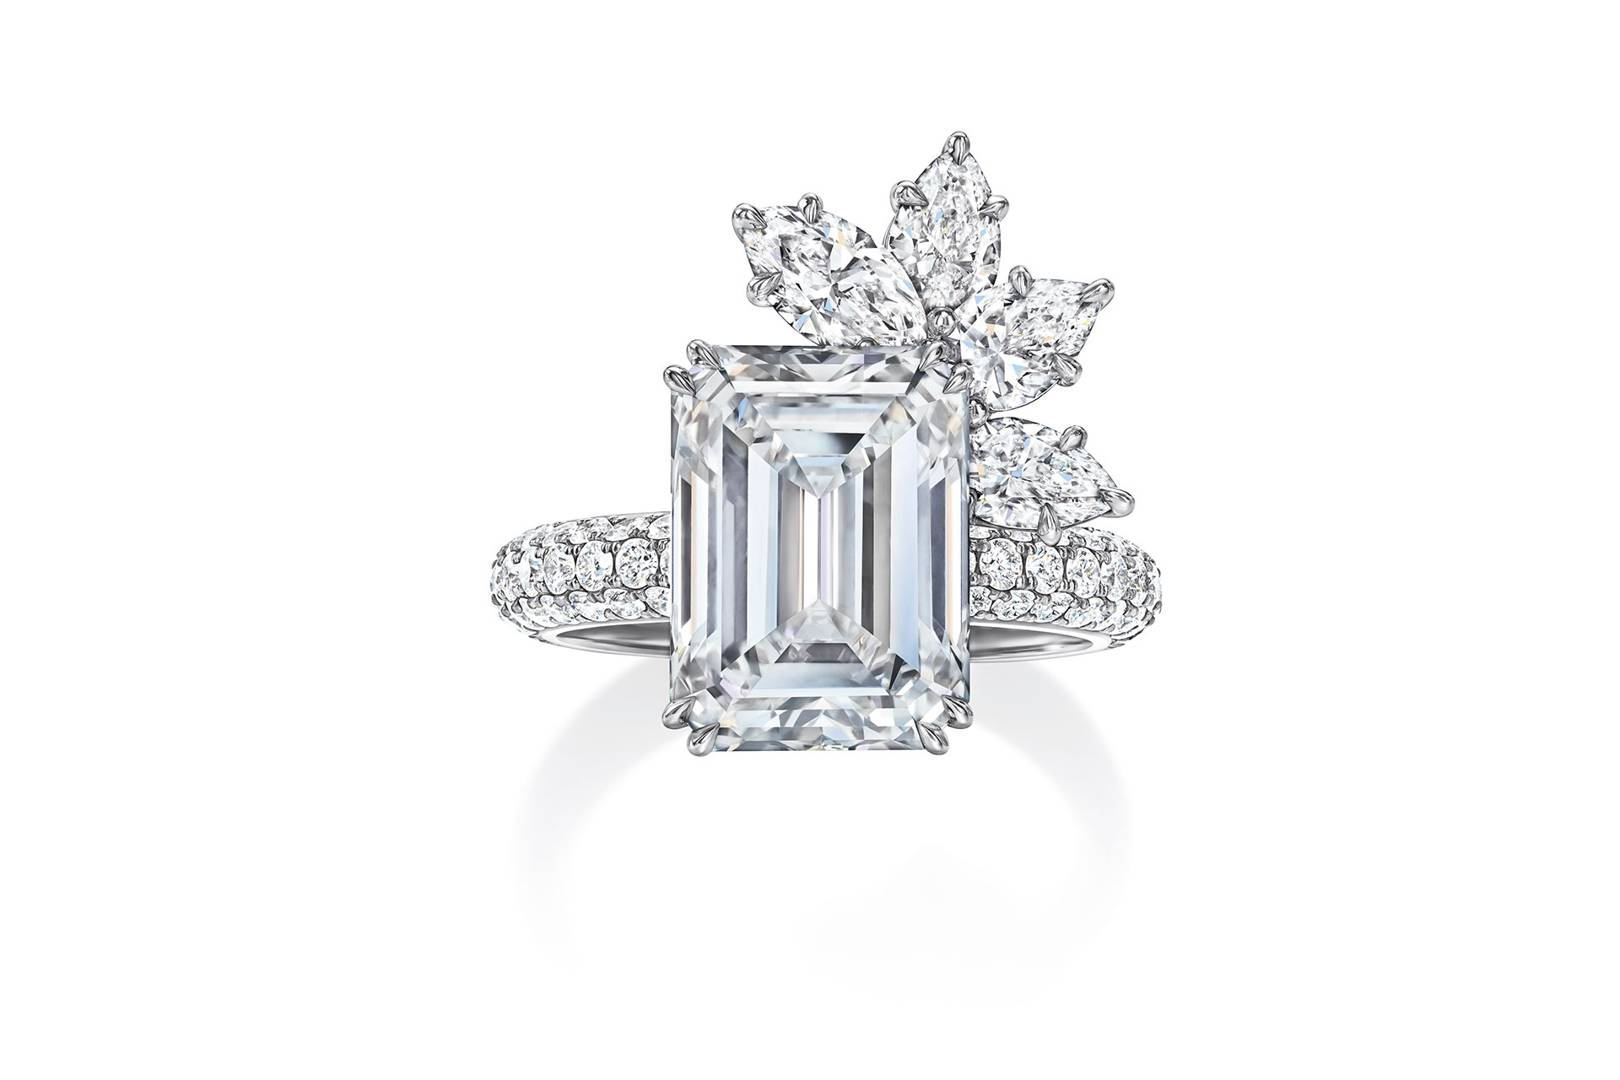 The Newest Engagement Rings From Harry Winston | Tatler Within Winston Blossom Diamond Engagement Rings (View 14 of 25)